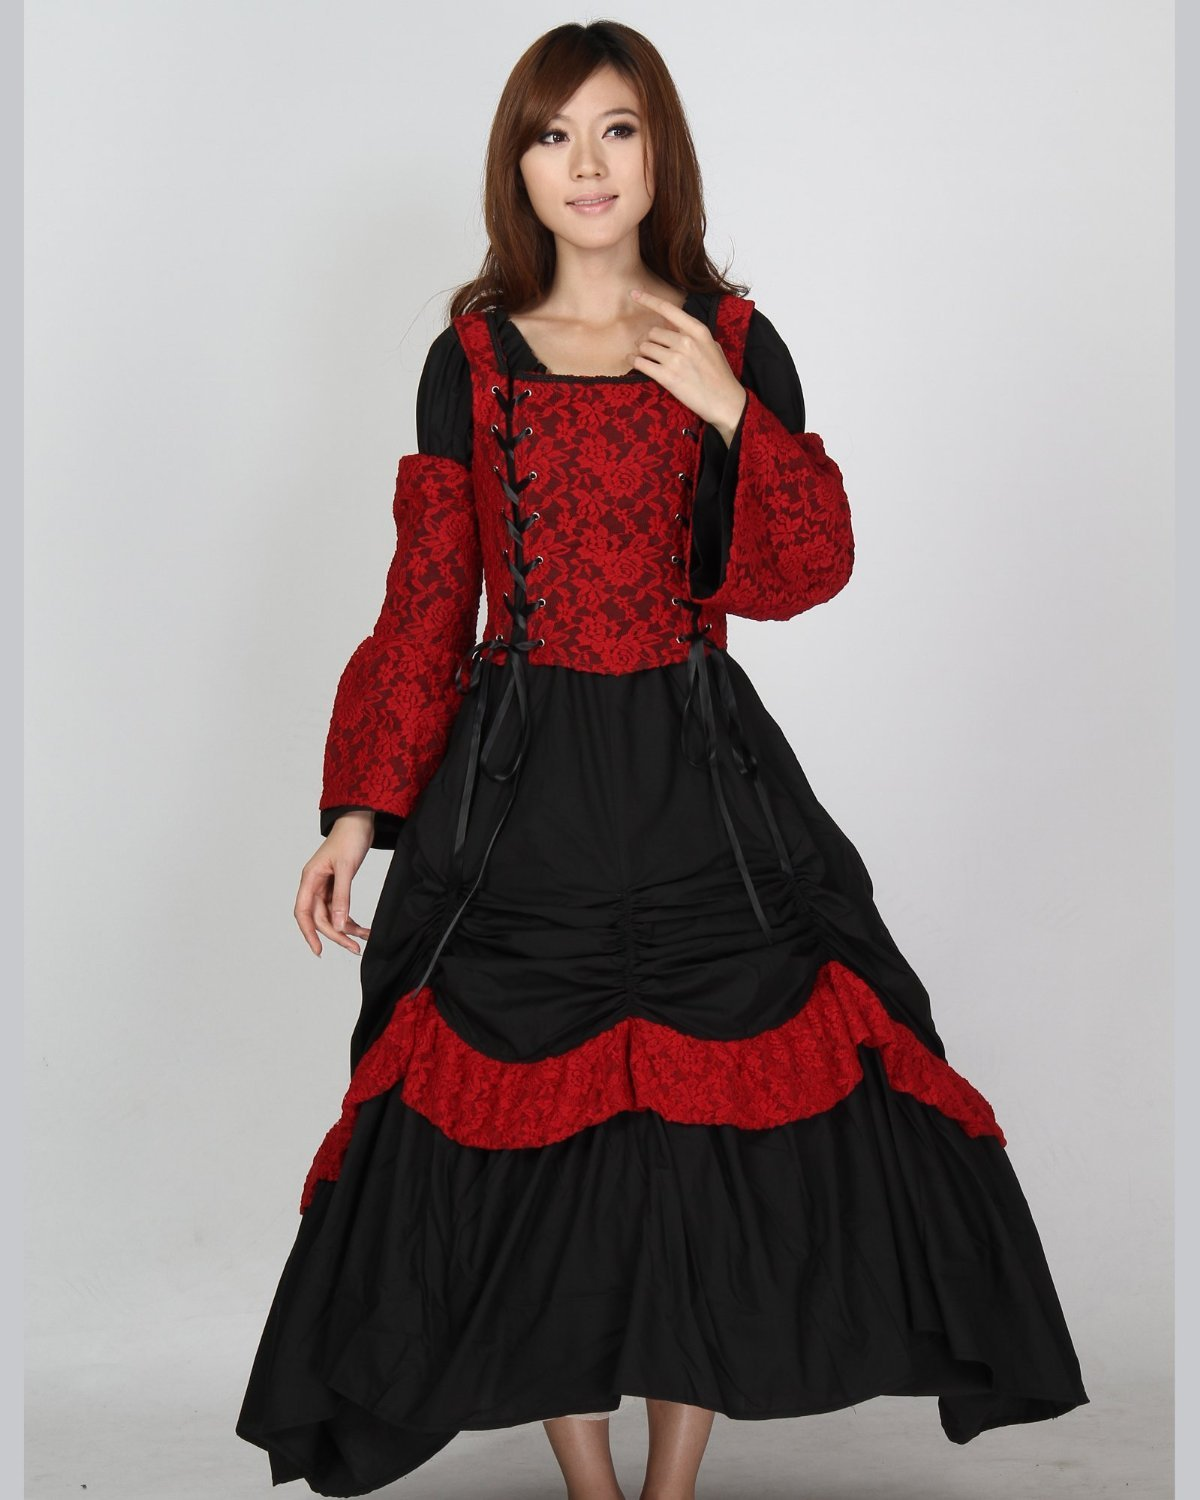 Gothic Corset Lace Lolita Civil War Pattern Bodice Dress Ball Gown Promin Cocktail Dresses from